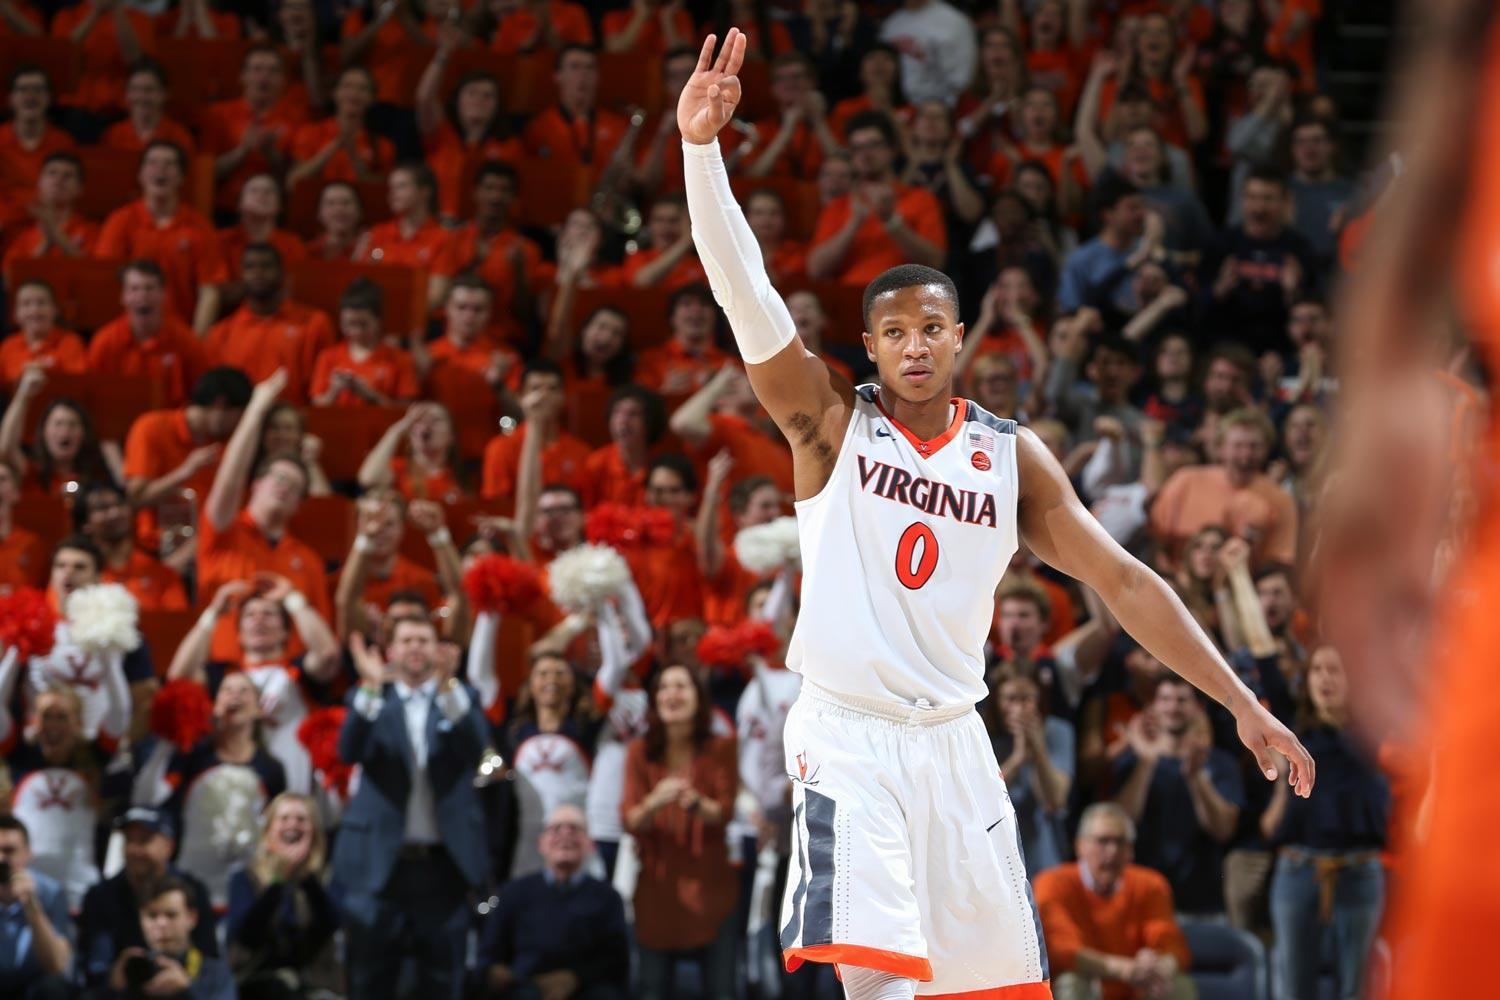 Devon Hall participated in the Portsmouth Invitational Tournament and the NBA combine, and will have worked out for nearly two-thirds of the NBA's 30 teams by draft day.